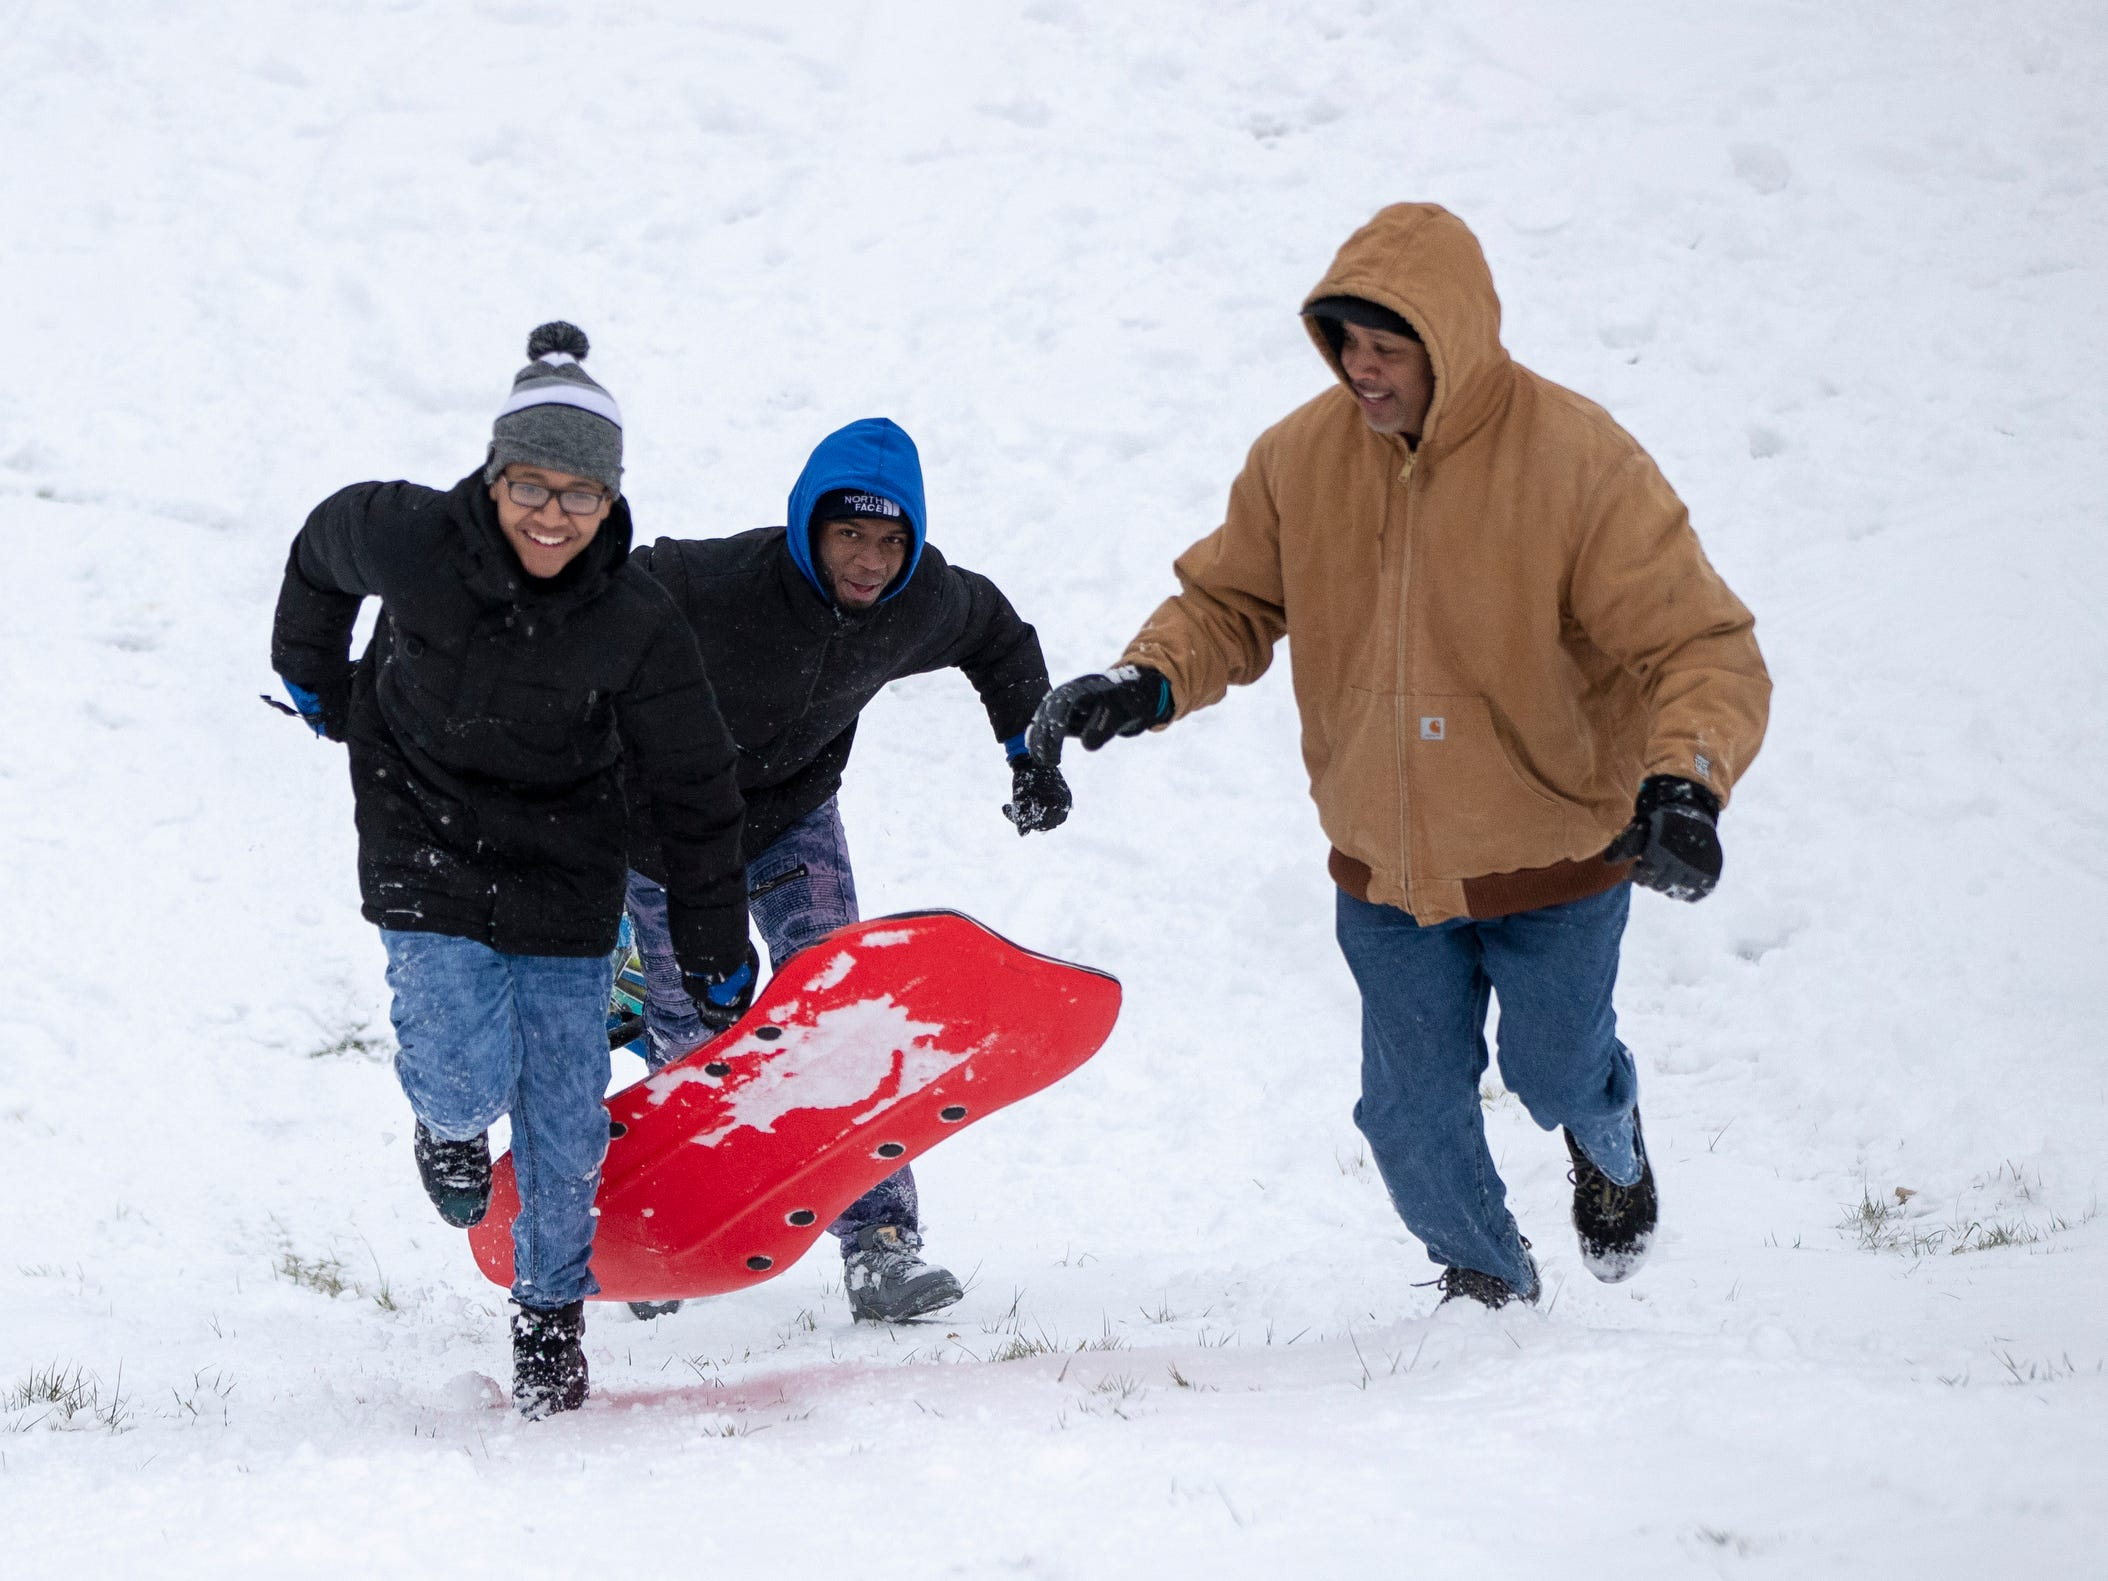 Damon Scott II (left), 15, friend Jamal Marshall, 17, and Scott's father Damon Scott, sled at Butler University on a day where 5-7 inches of snow is expected to fall in Central Indiana, Indianapolis, Saturday, Jan. 12, 2019.